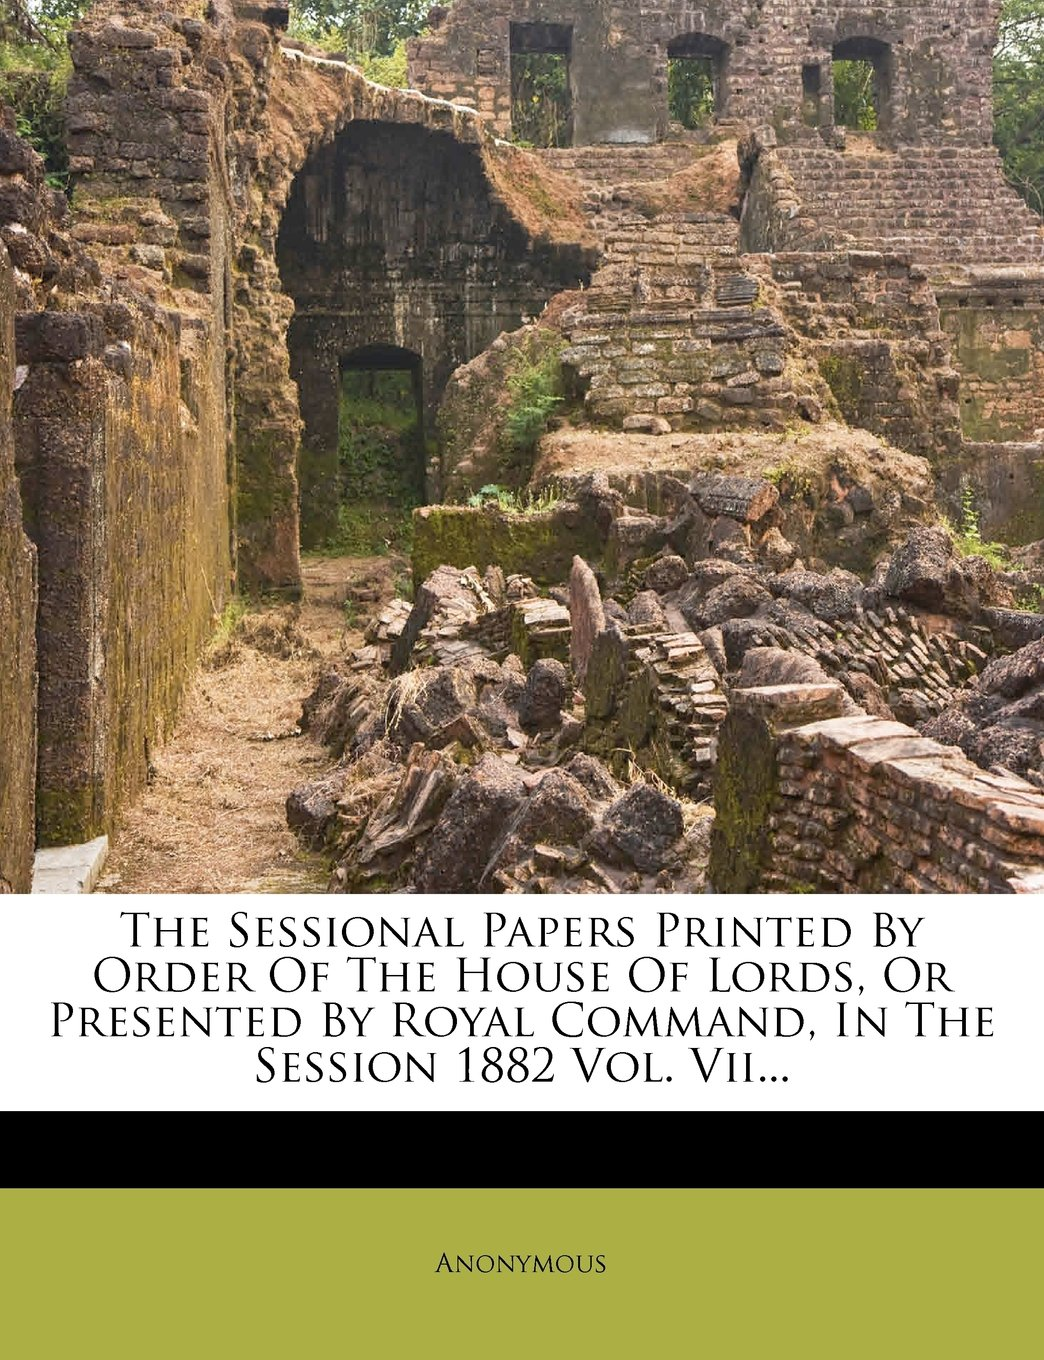 The Sessional Papers Printed By Order Of The House Of Lords, Or Presented By Royal Command, In The Session 1882 Vol. Vii... ebook